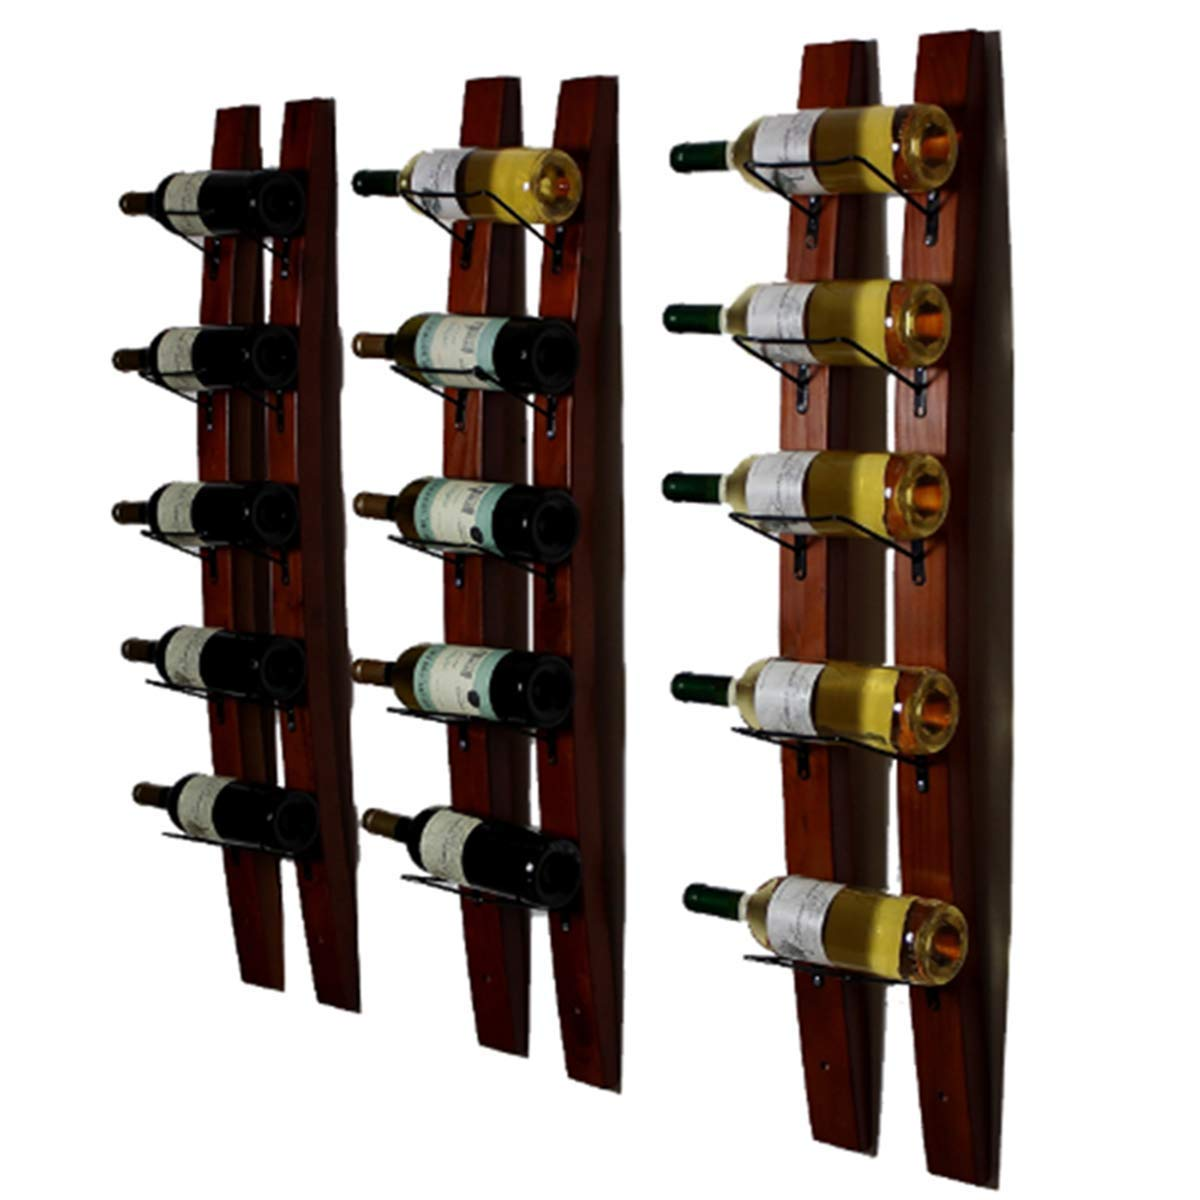 DCIGNA Wall Mounted Wine Rack, Barrel Stave Wine Rack, Wooden Wine Bottle Holder Rack, Imported Pine Wood and Metal - 6 Bottles 40x7.6inch (Red Wine Color)